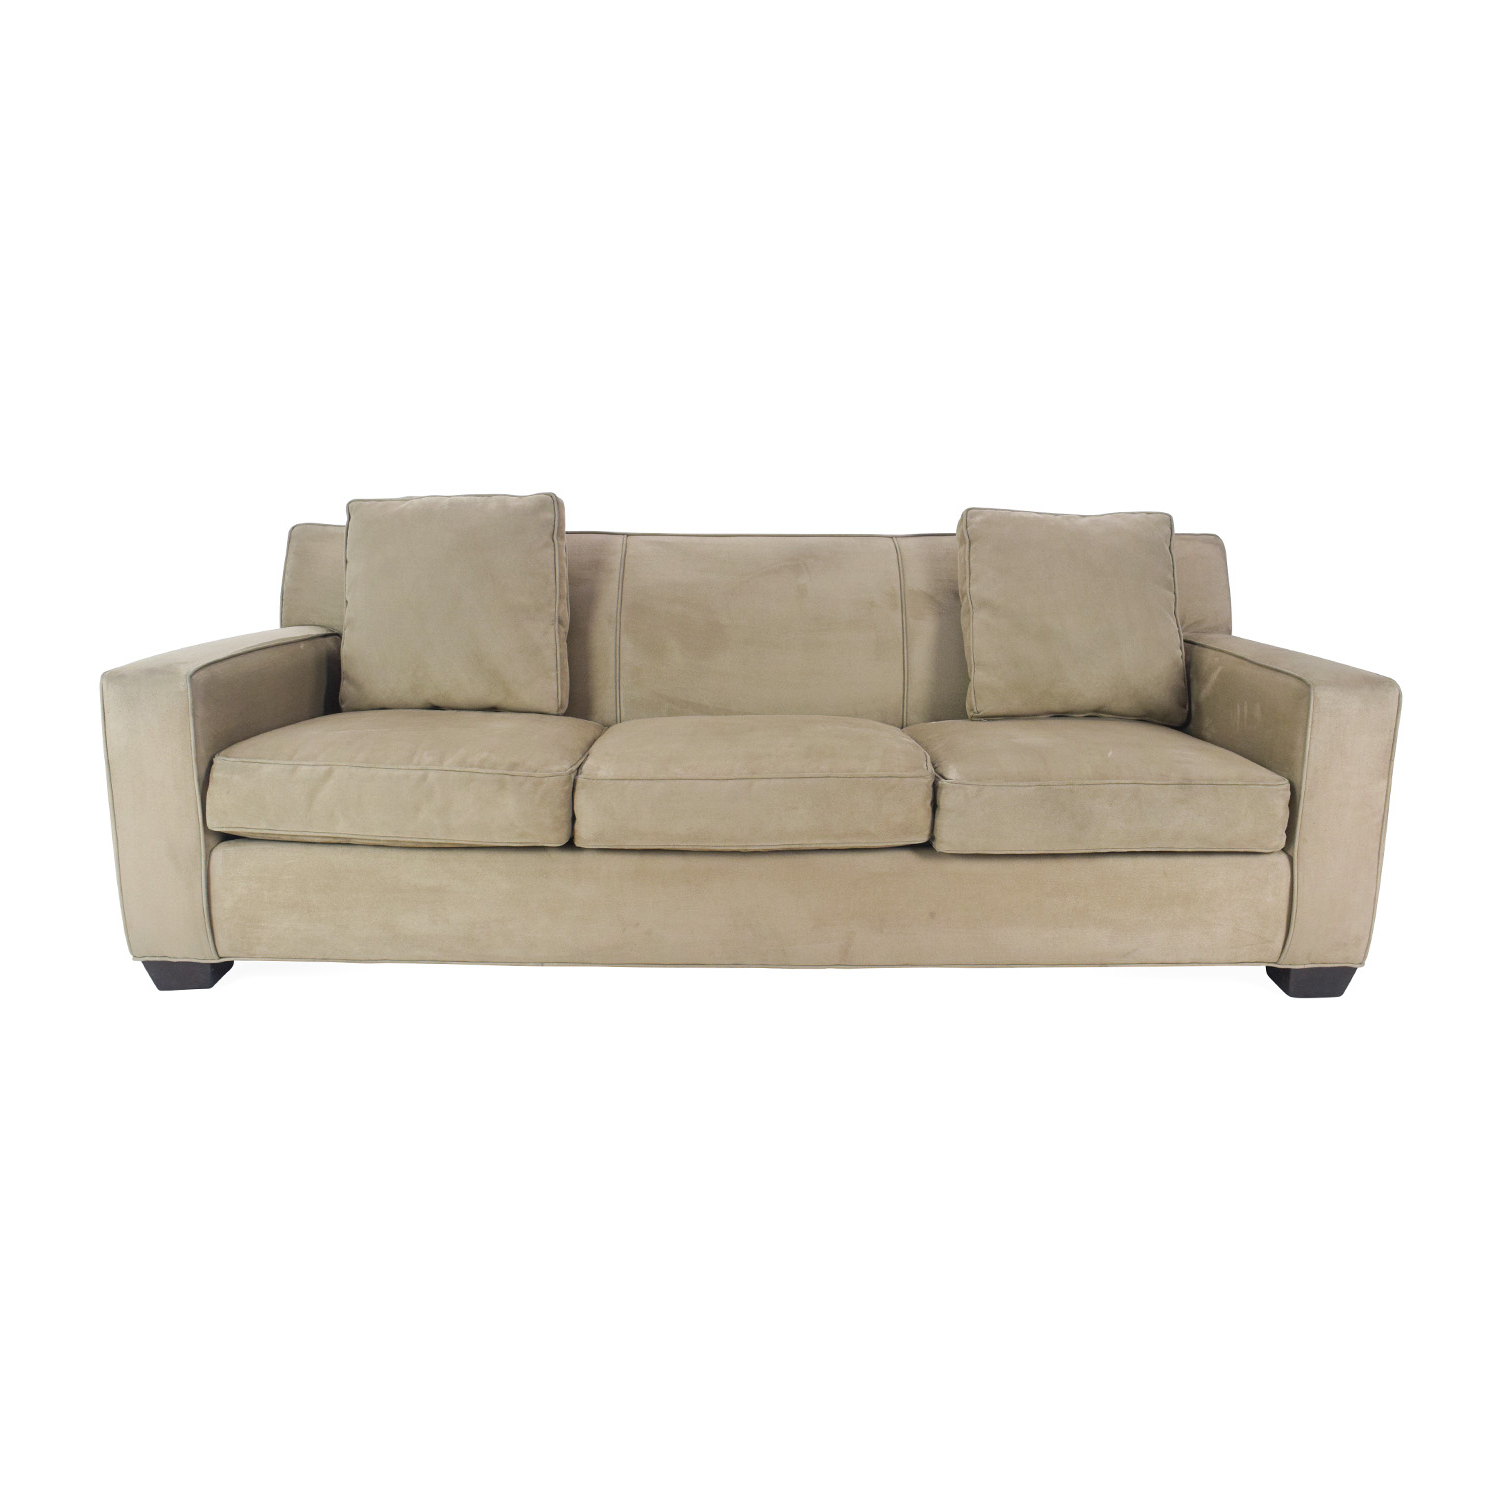 [%78% Off – Crate And Barrel Crate And Barrel Cameron Sofa / Sofas With Regard To Most Current Cameron Sofa Chairs|cameron Sofa Chairs Regarding Well Known 78% Off – Crate And Barrel Crate And Barrel Cameron Sofa / Sofas|latest Cameron Sofa Chairs With 78% Off – Crate And Barrel Crate And Barrel Cameron Sofa / Sofas|famous 78% Off – Crate And Barrel Crate And Barrel Cameron Sofa / Sofas Within Cameron Sofa Chairs%] (View 1 of 20)